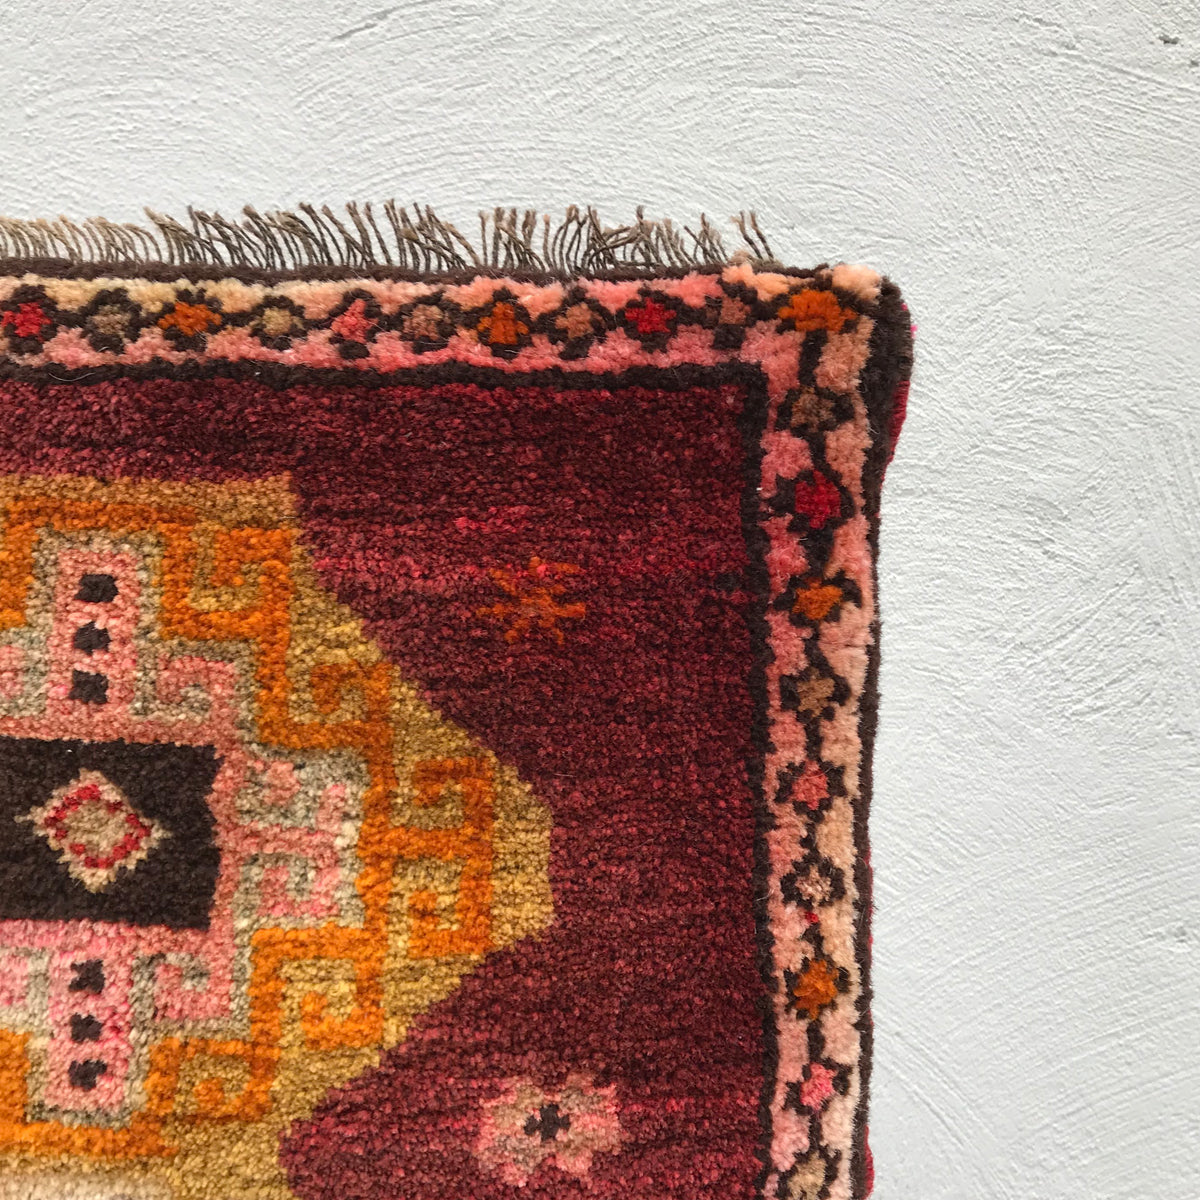 This small handwoven vintage Turkish rug has great colors including pink. Great for entryways, bathrooms, kitchens and layering. 18.5x30 inches.